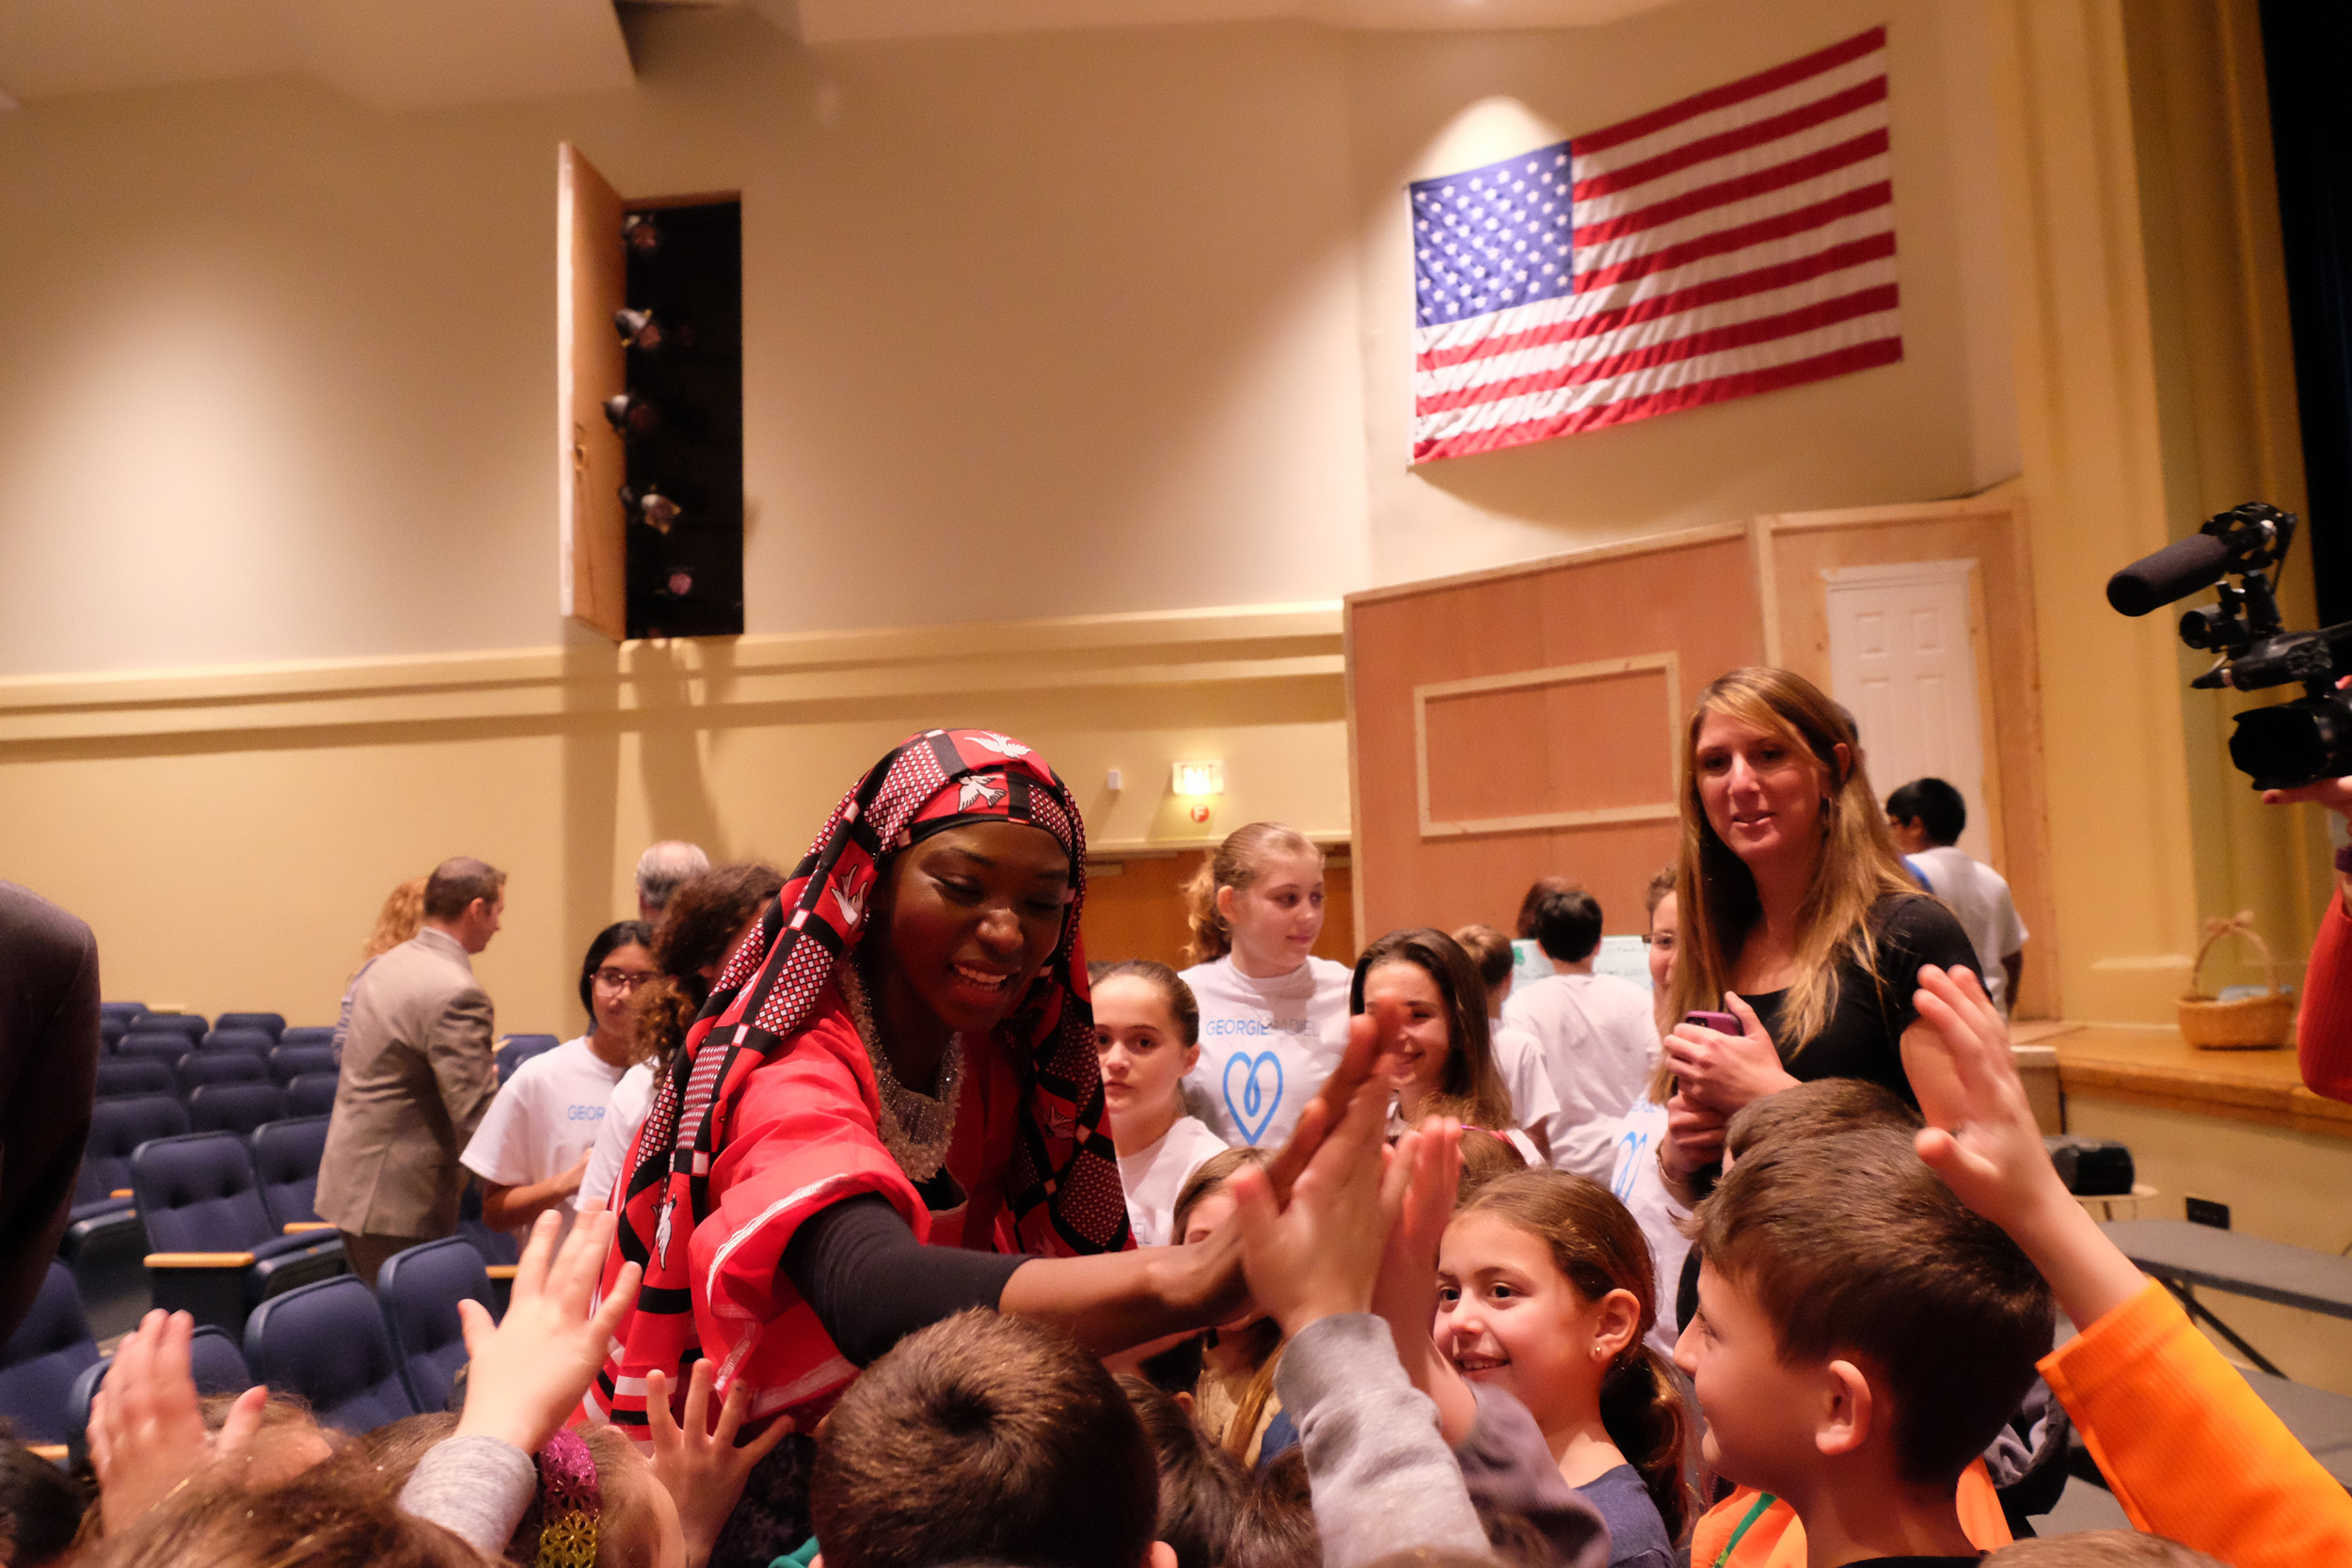 Georgie Badiel high-fived children after they gave a presentation on the lack of access to clean water in her home country of Burkina Faso, and around the world.